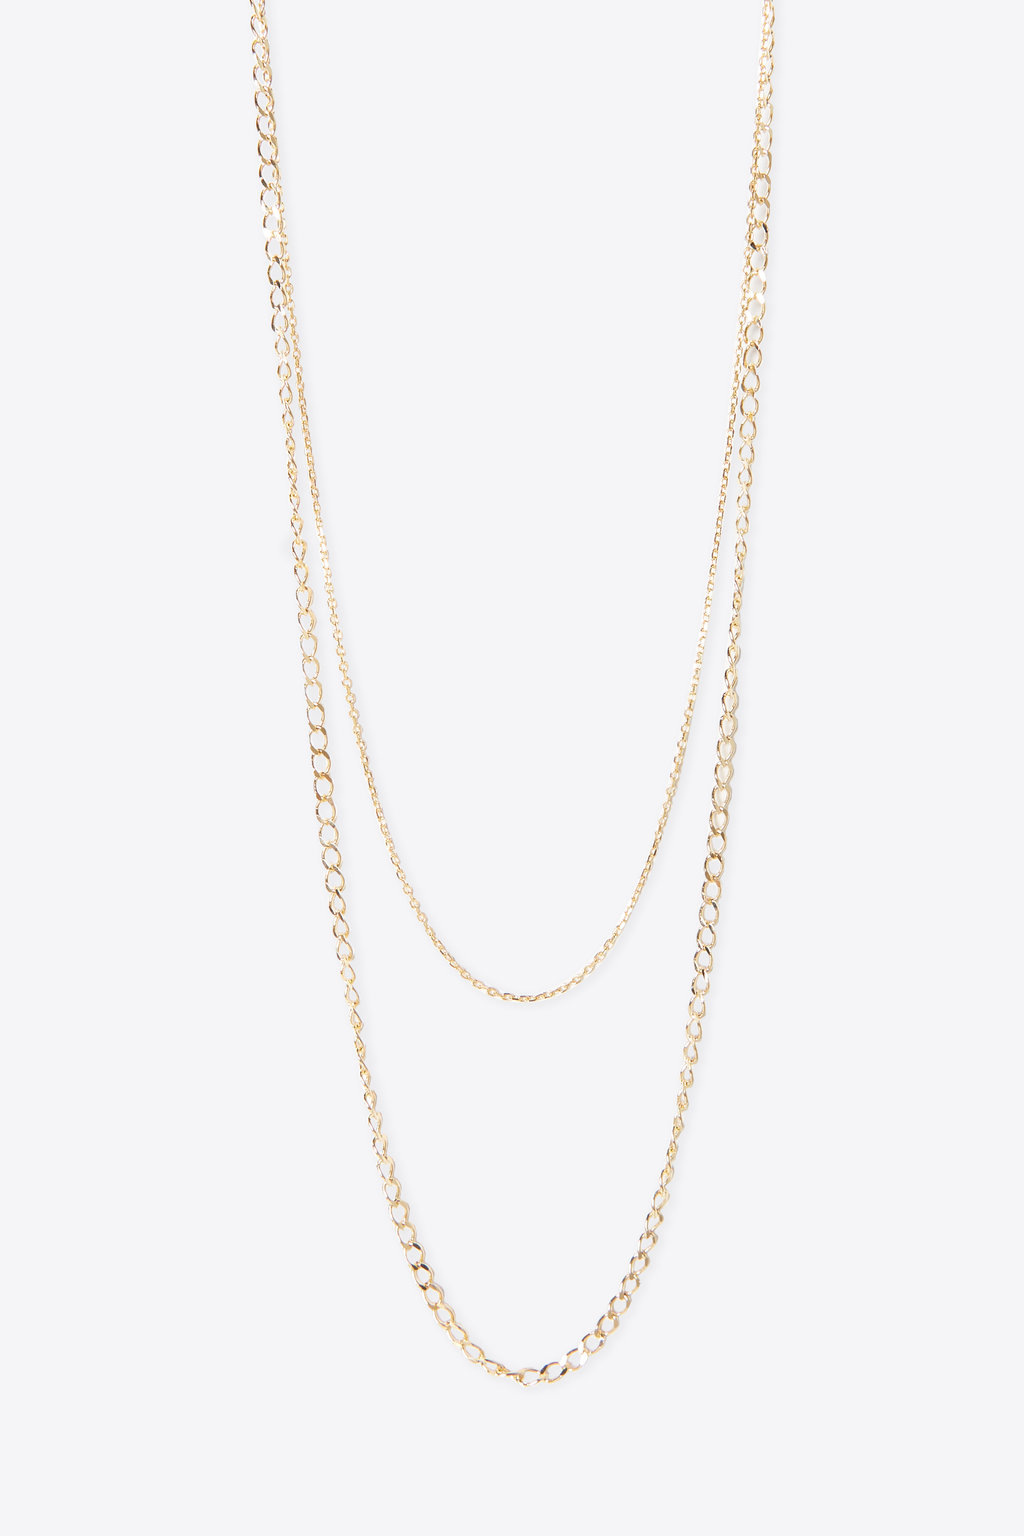 Necklace H006 Gold 2